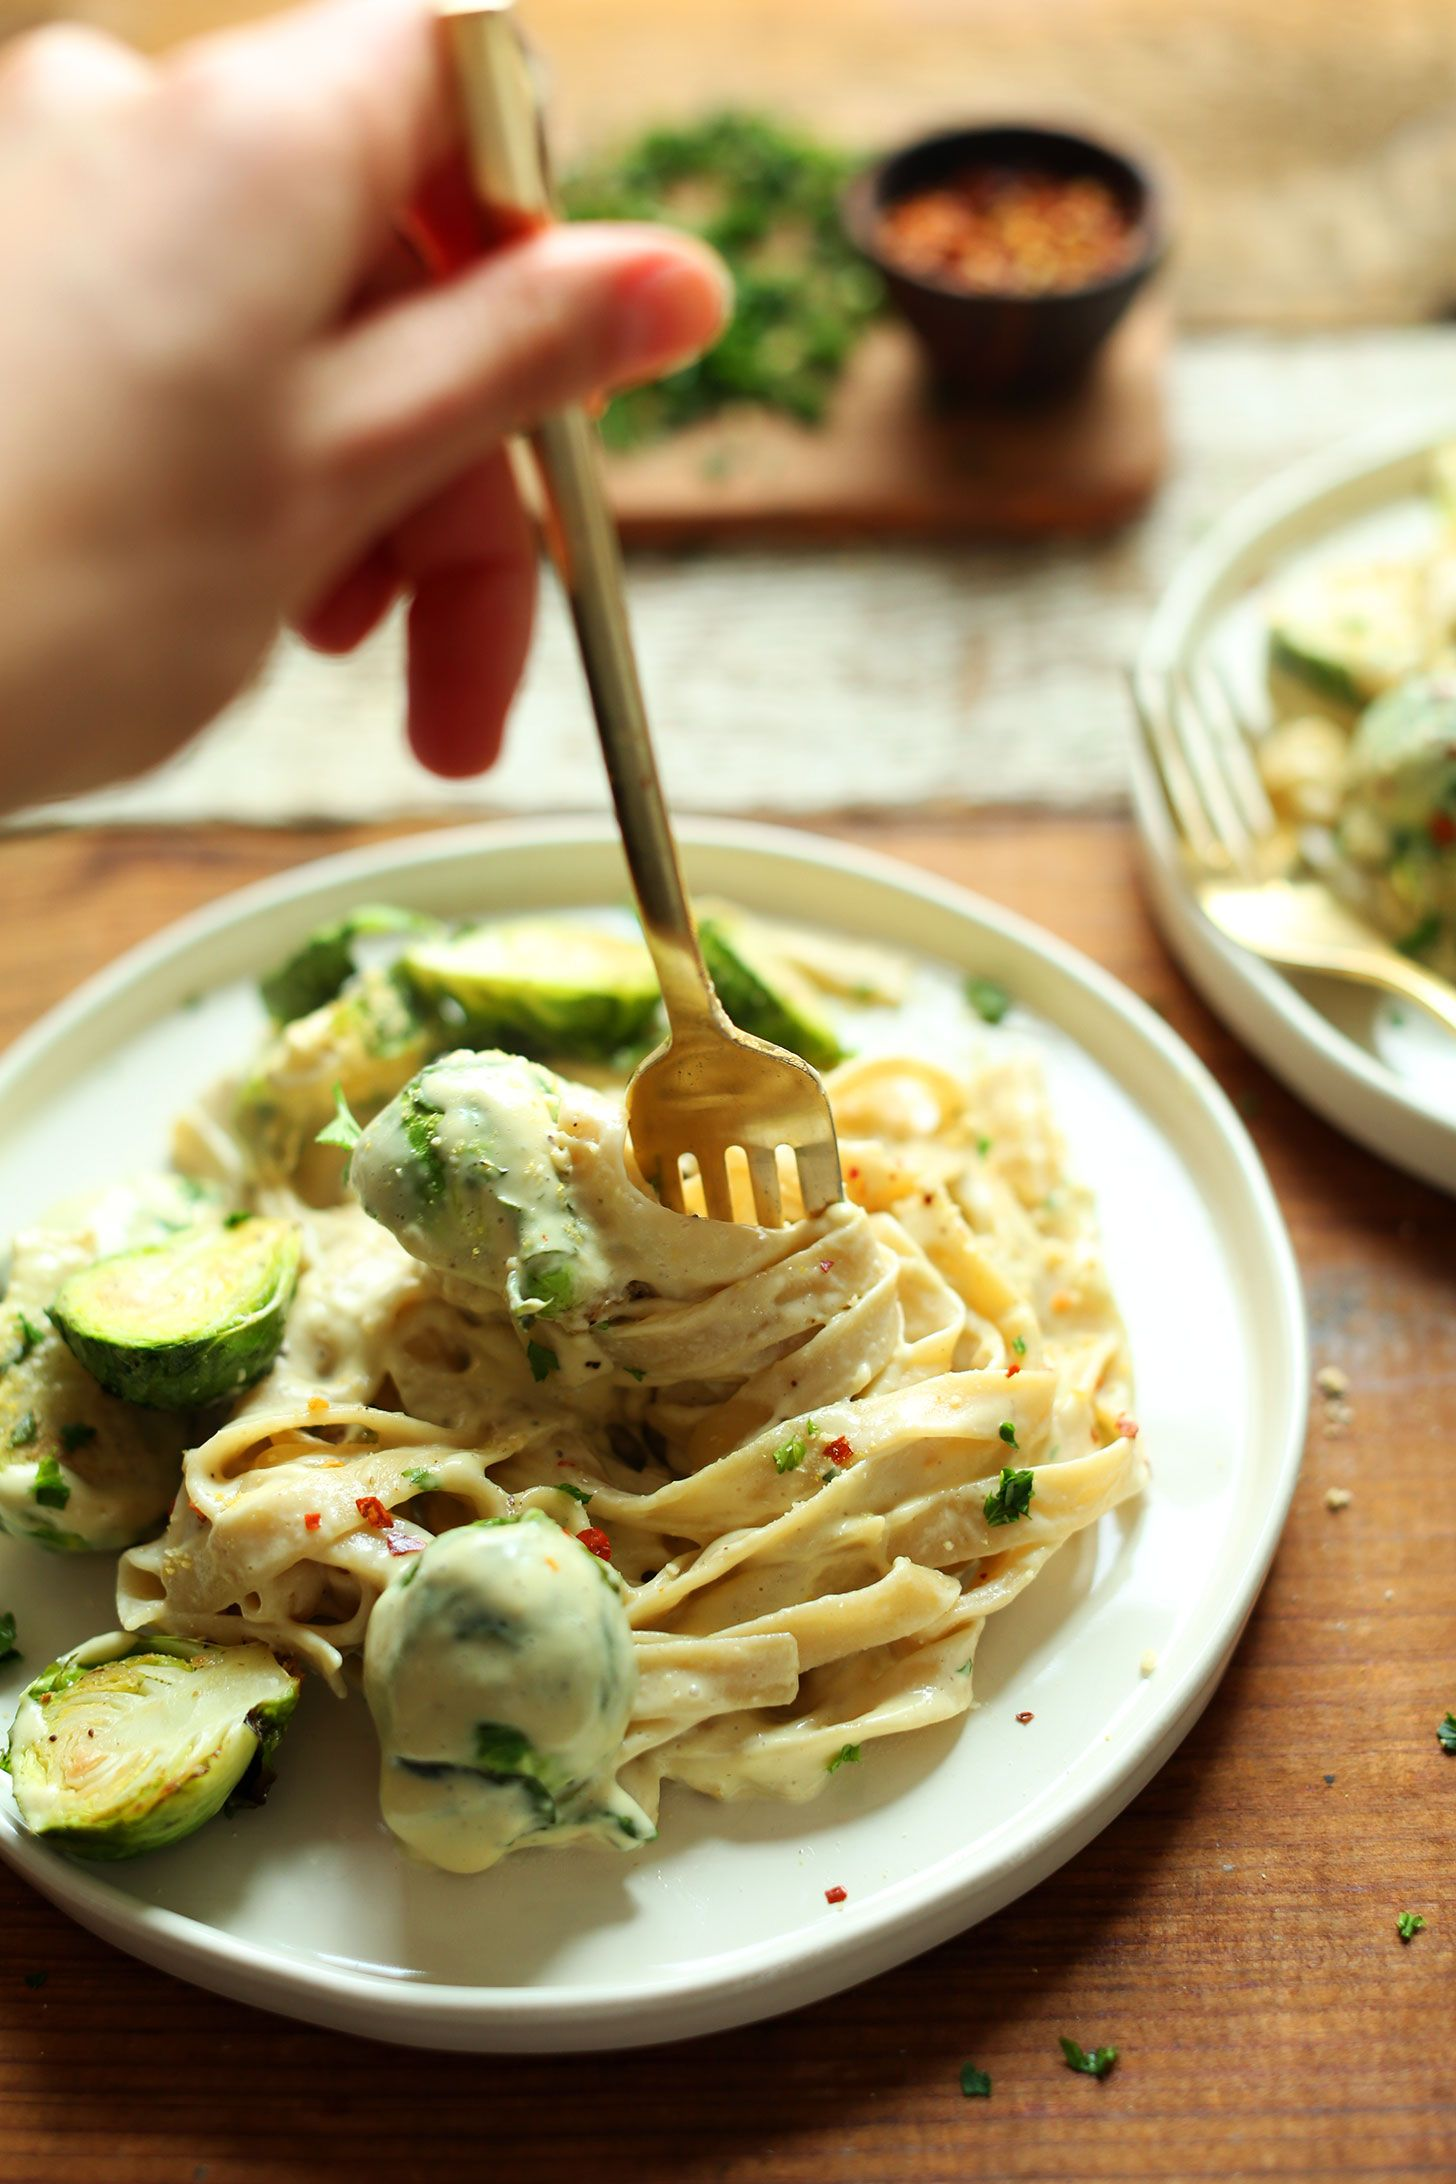 Garlic And White Wine Pasta With Brussels Sprouts